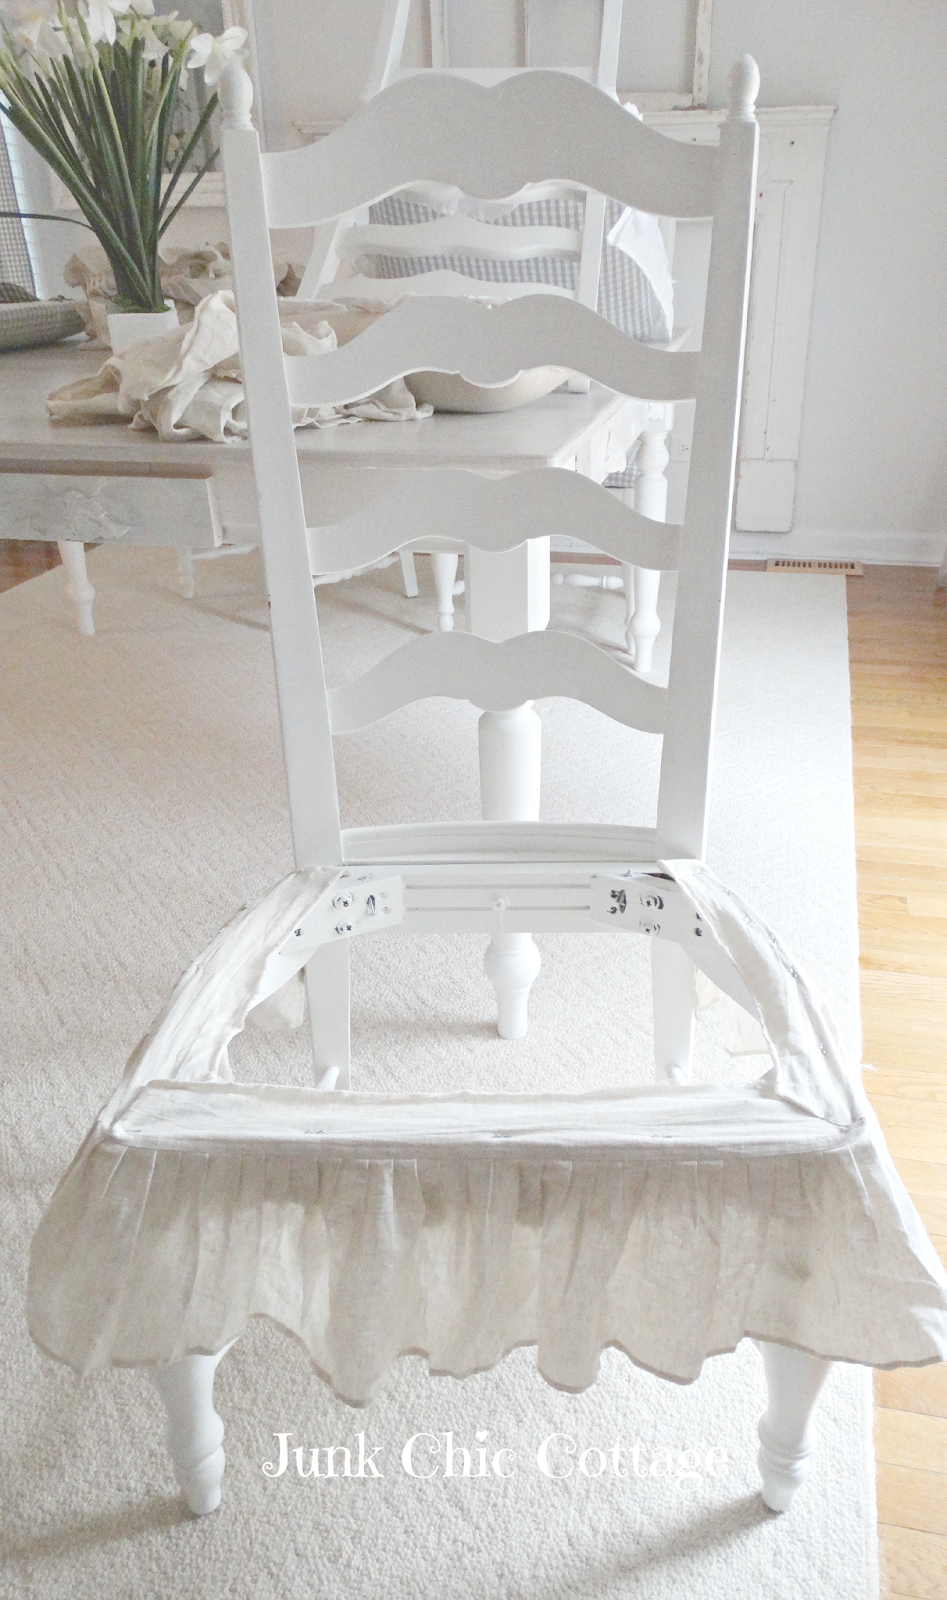 Junk Chic Cottage: Cream additions to the Dining Room